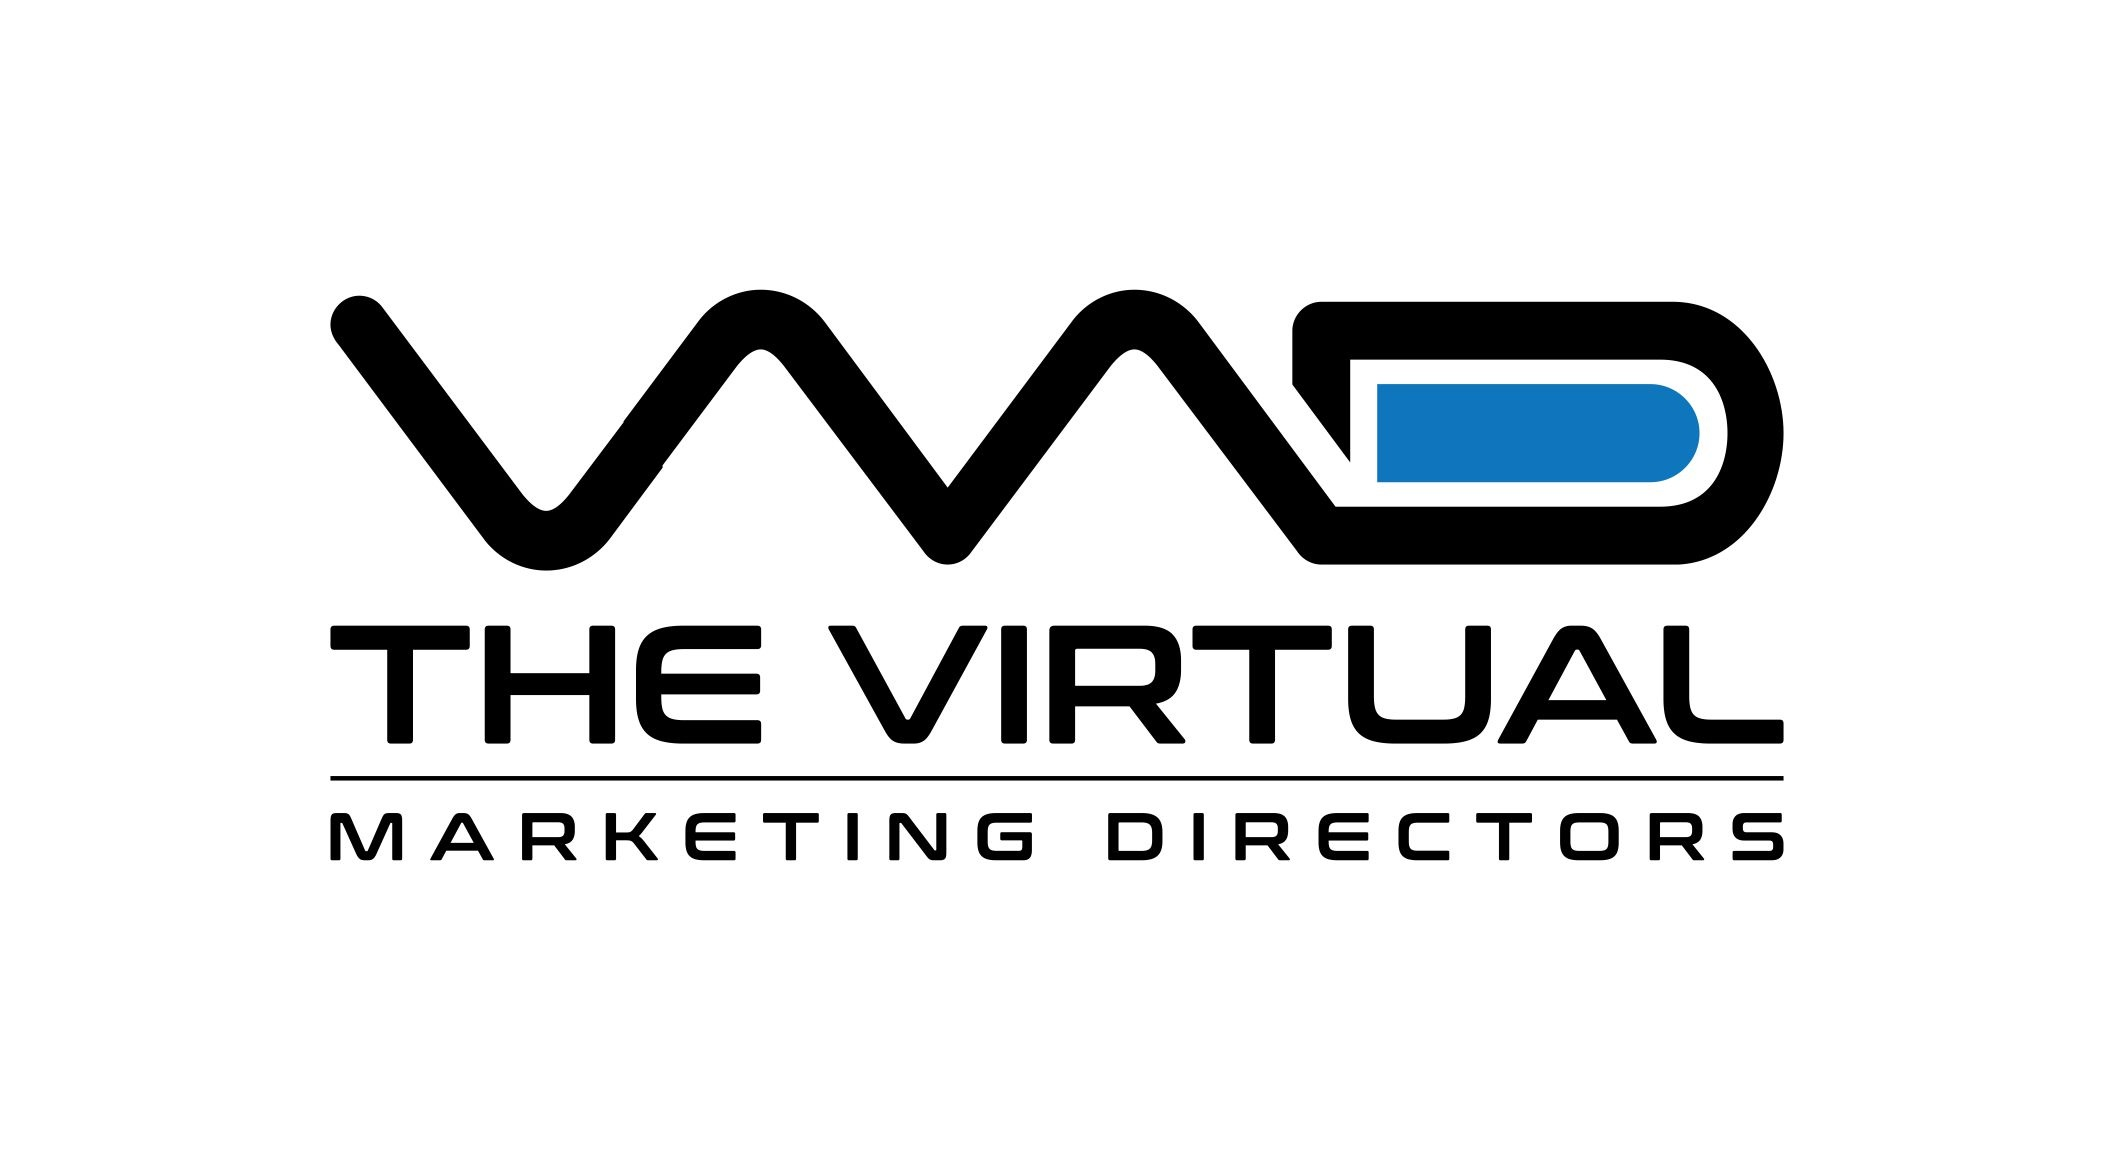 The Virtual Marketing Directors